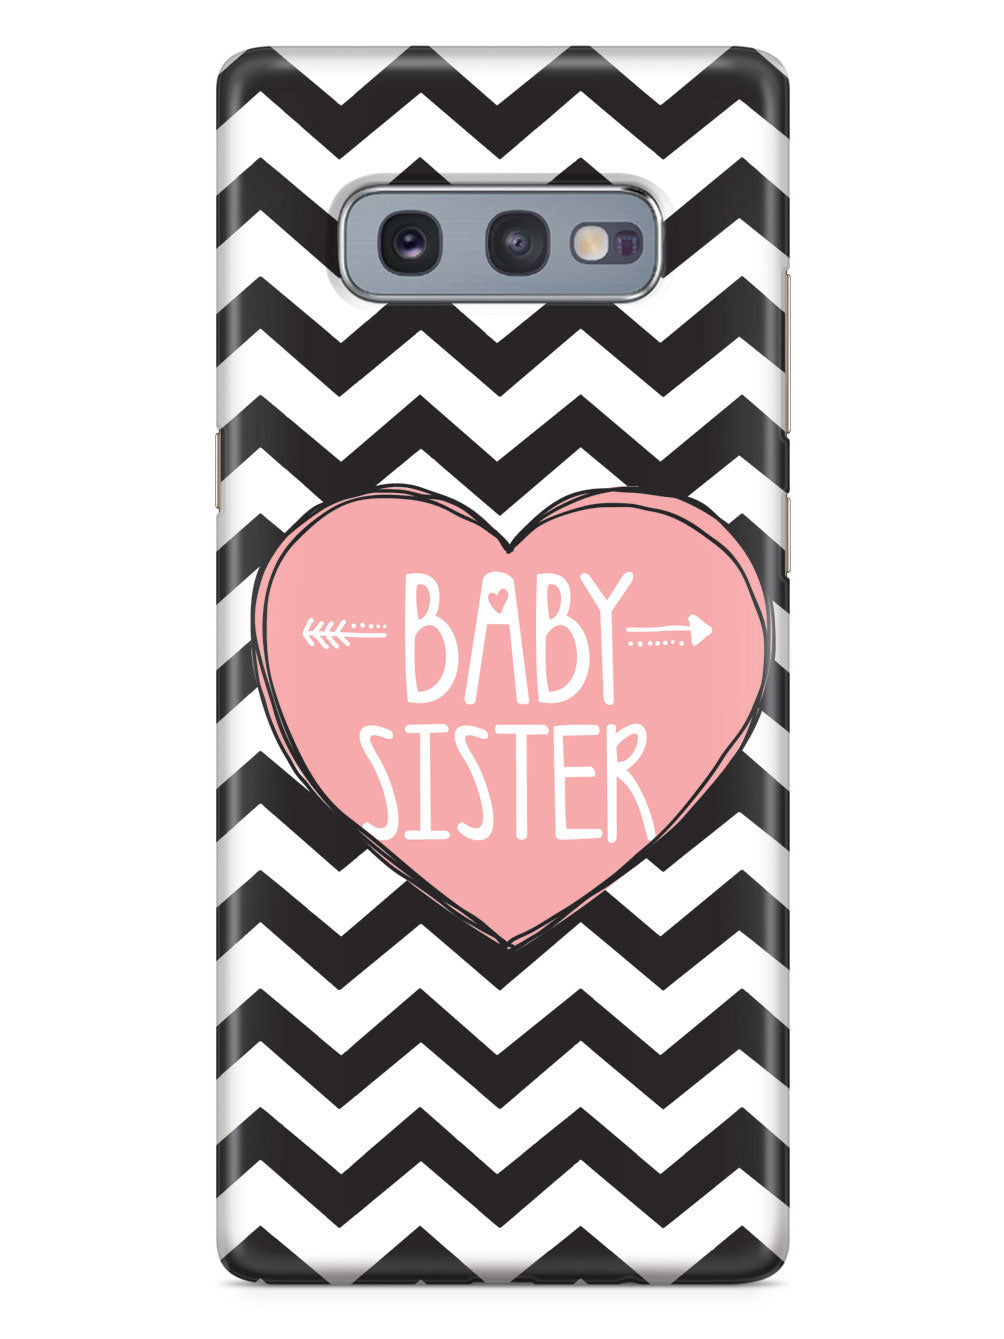 Sisterly Love - Baby Sister - Chevron Case